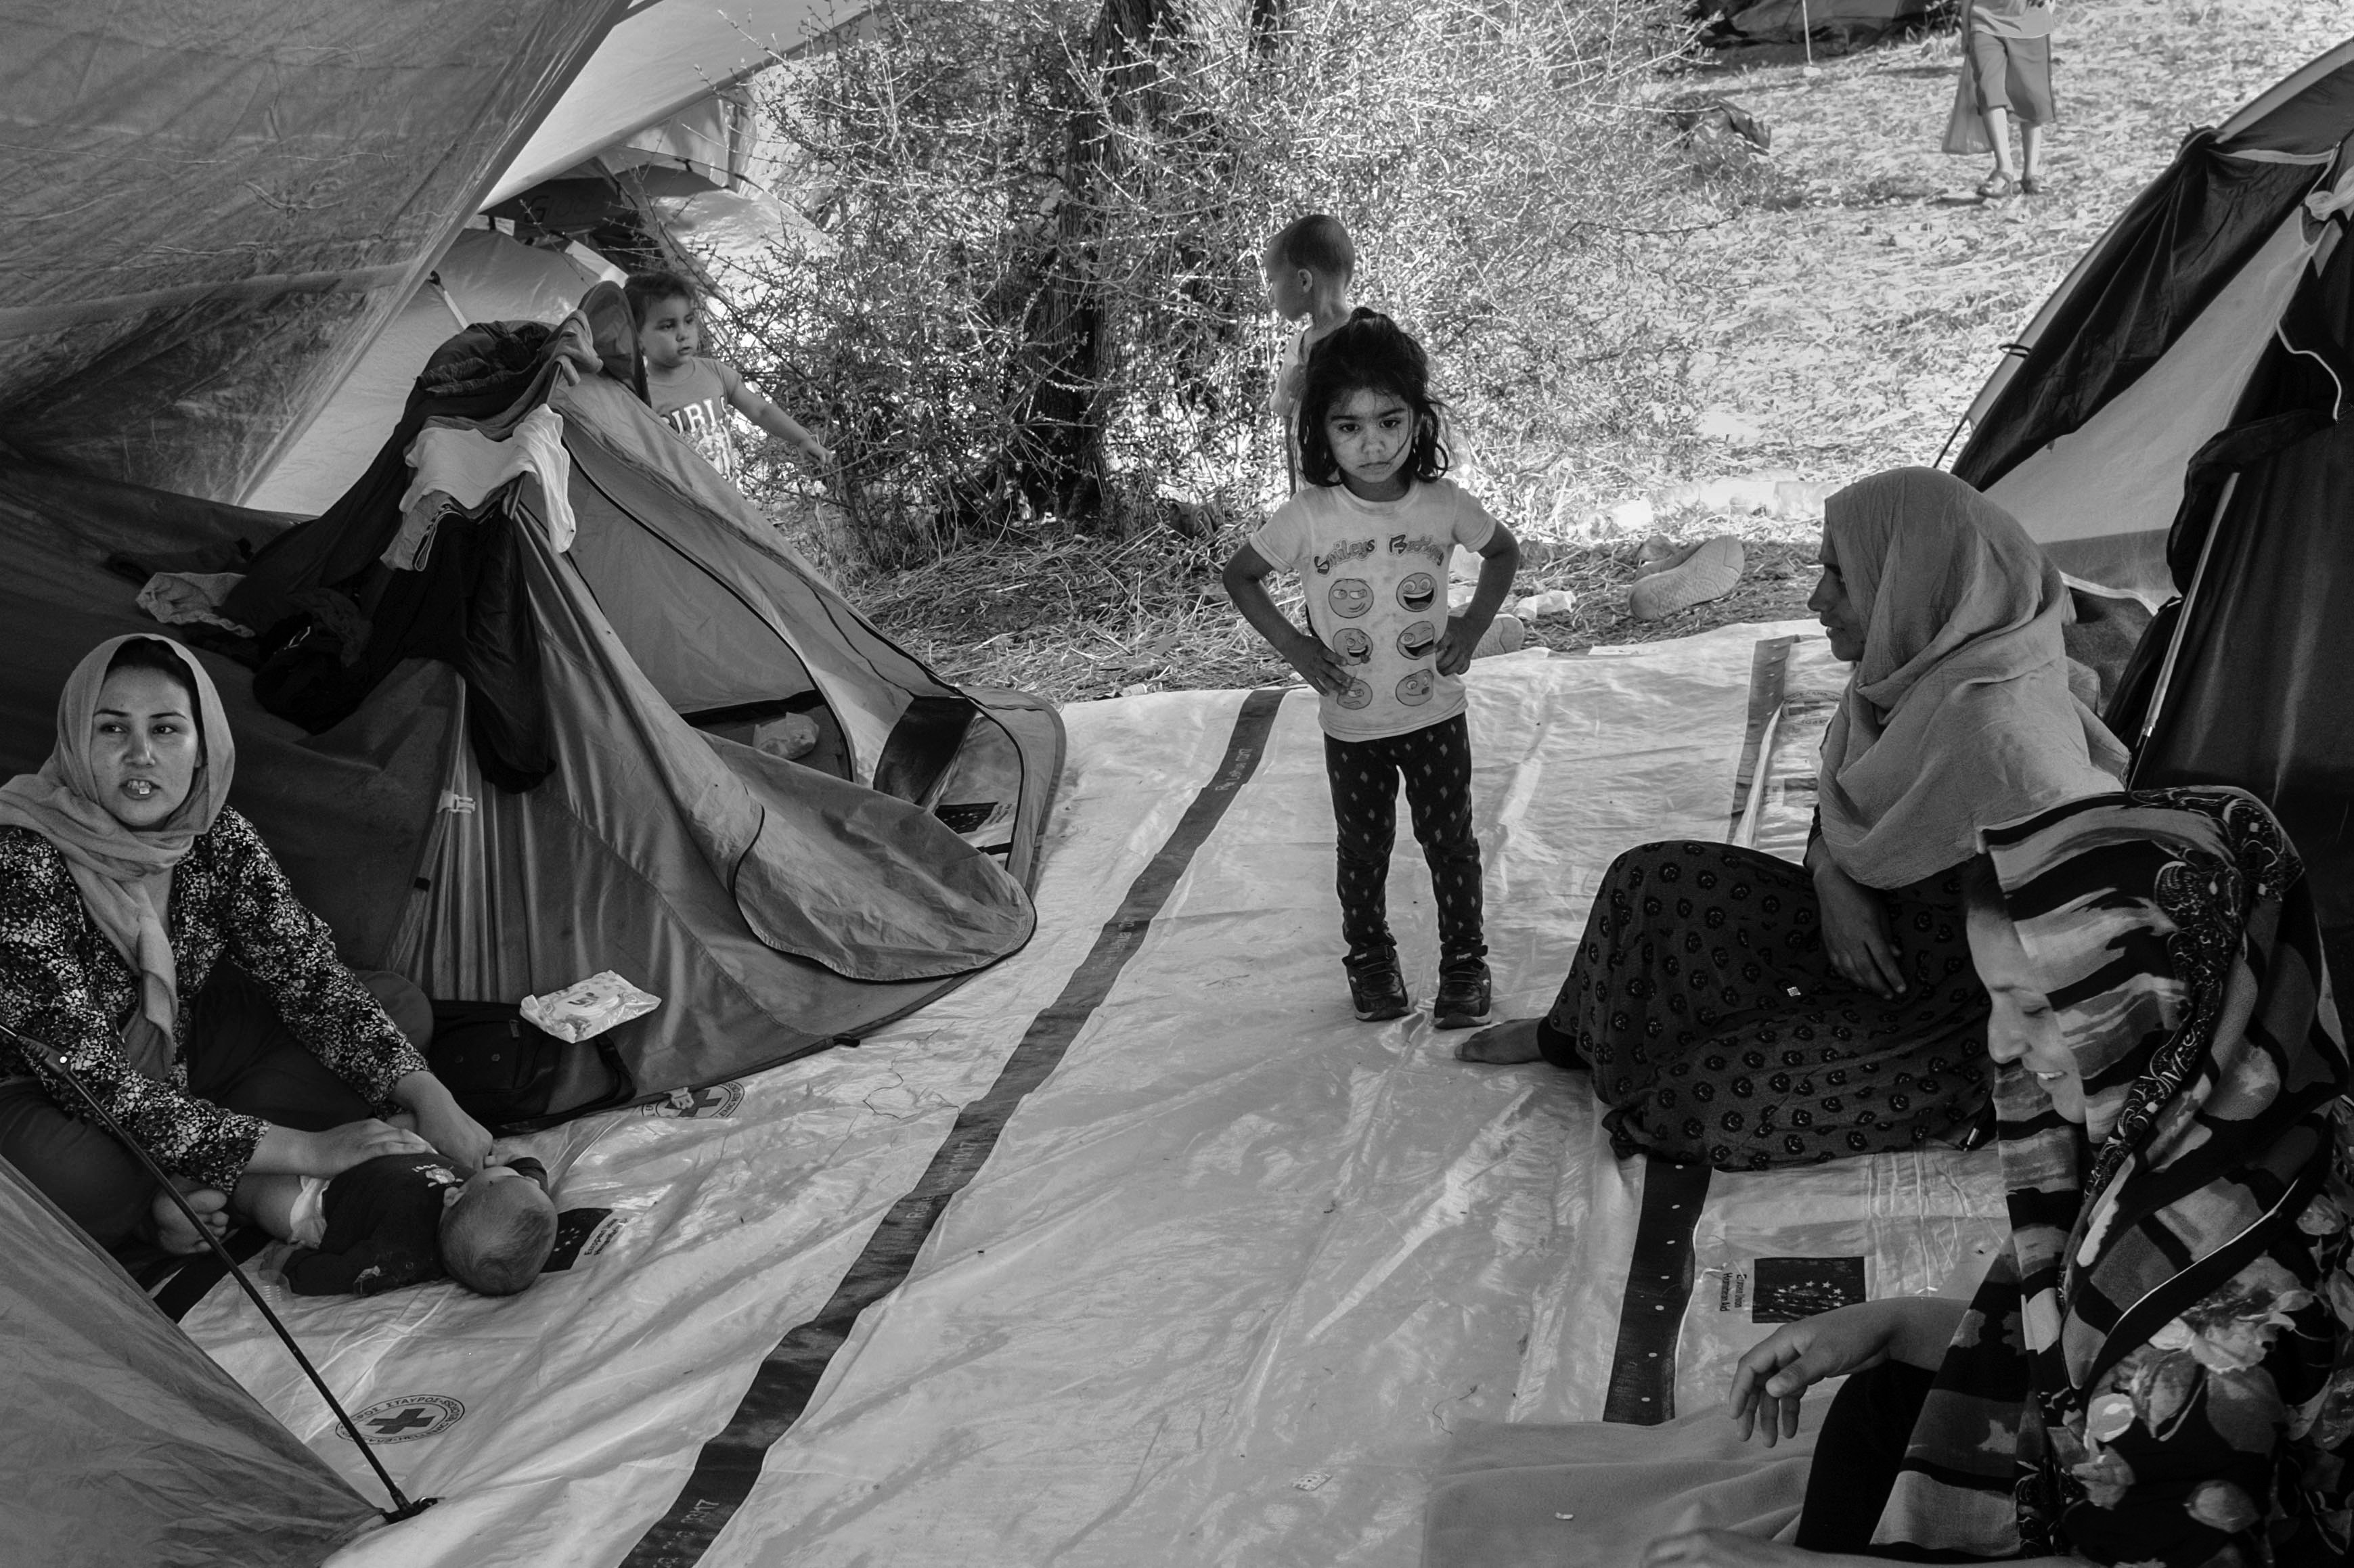 A Syrian family just arrived at the Olive Groove extension at refugee camp Moria, Lesbos, Greece